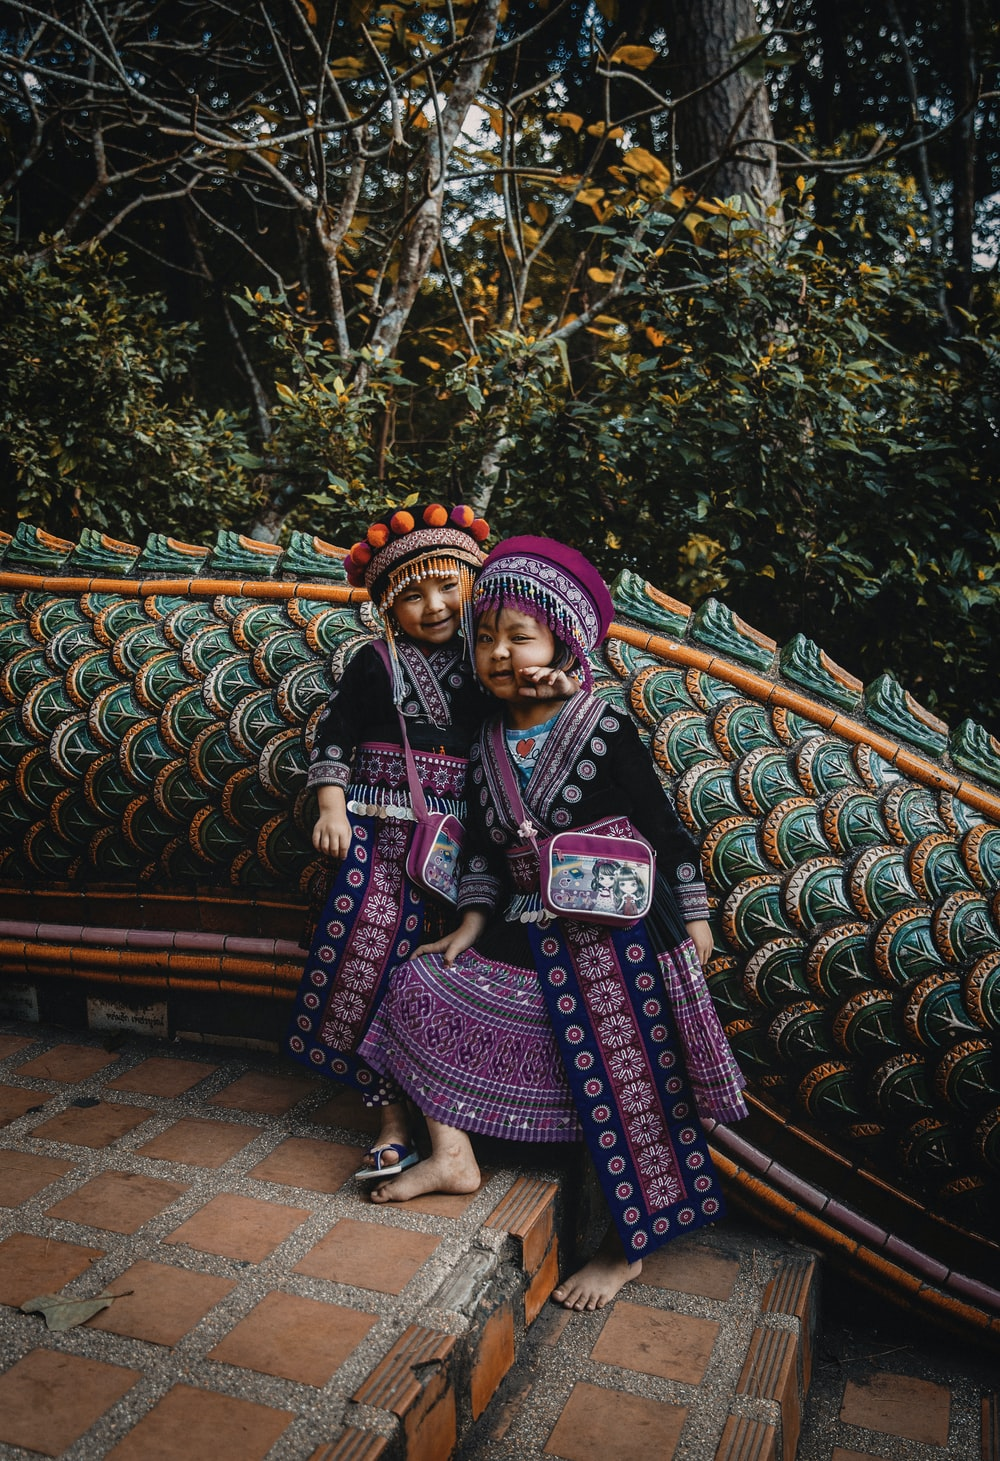 two girls wearing traditional costumes